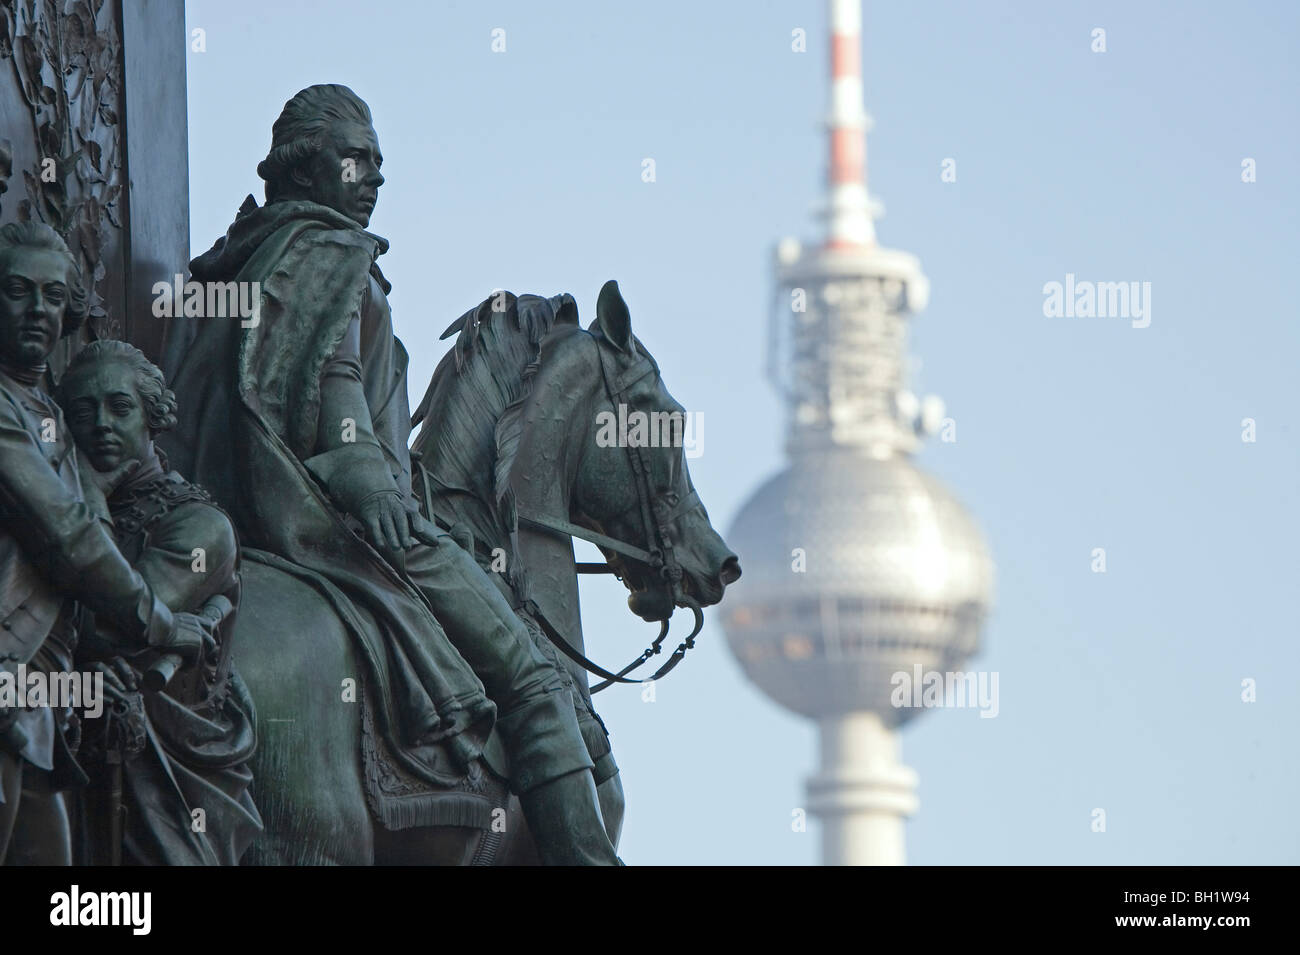 equestrian statue, memorial, Alter Fritz, Frederik the Great, with the Alex Television tower, Berlin Germany - Stock Image